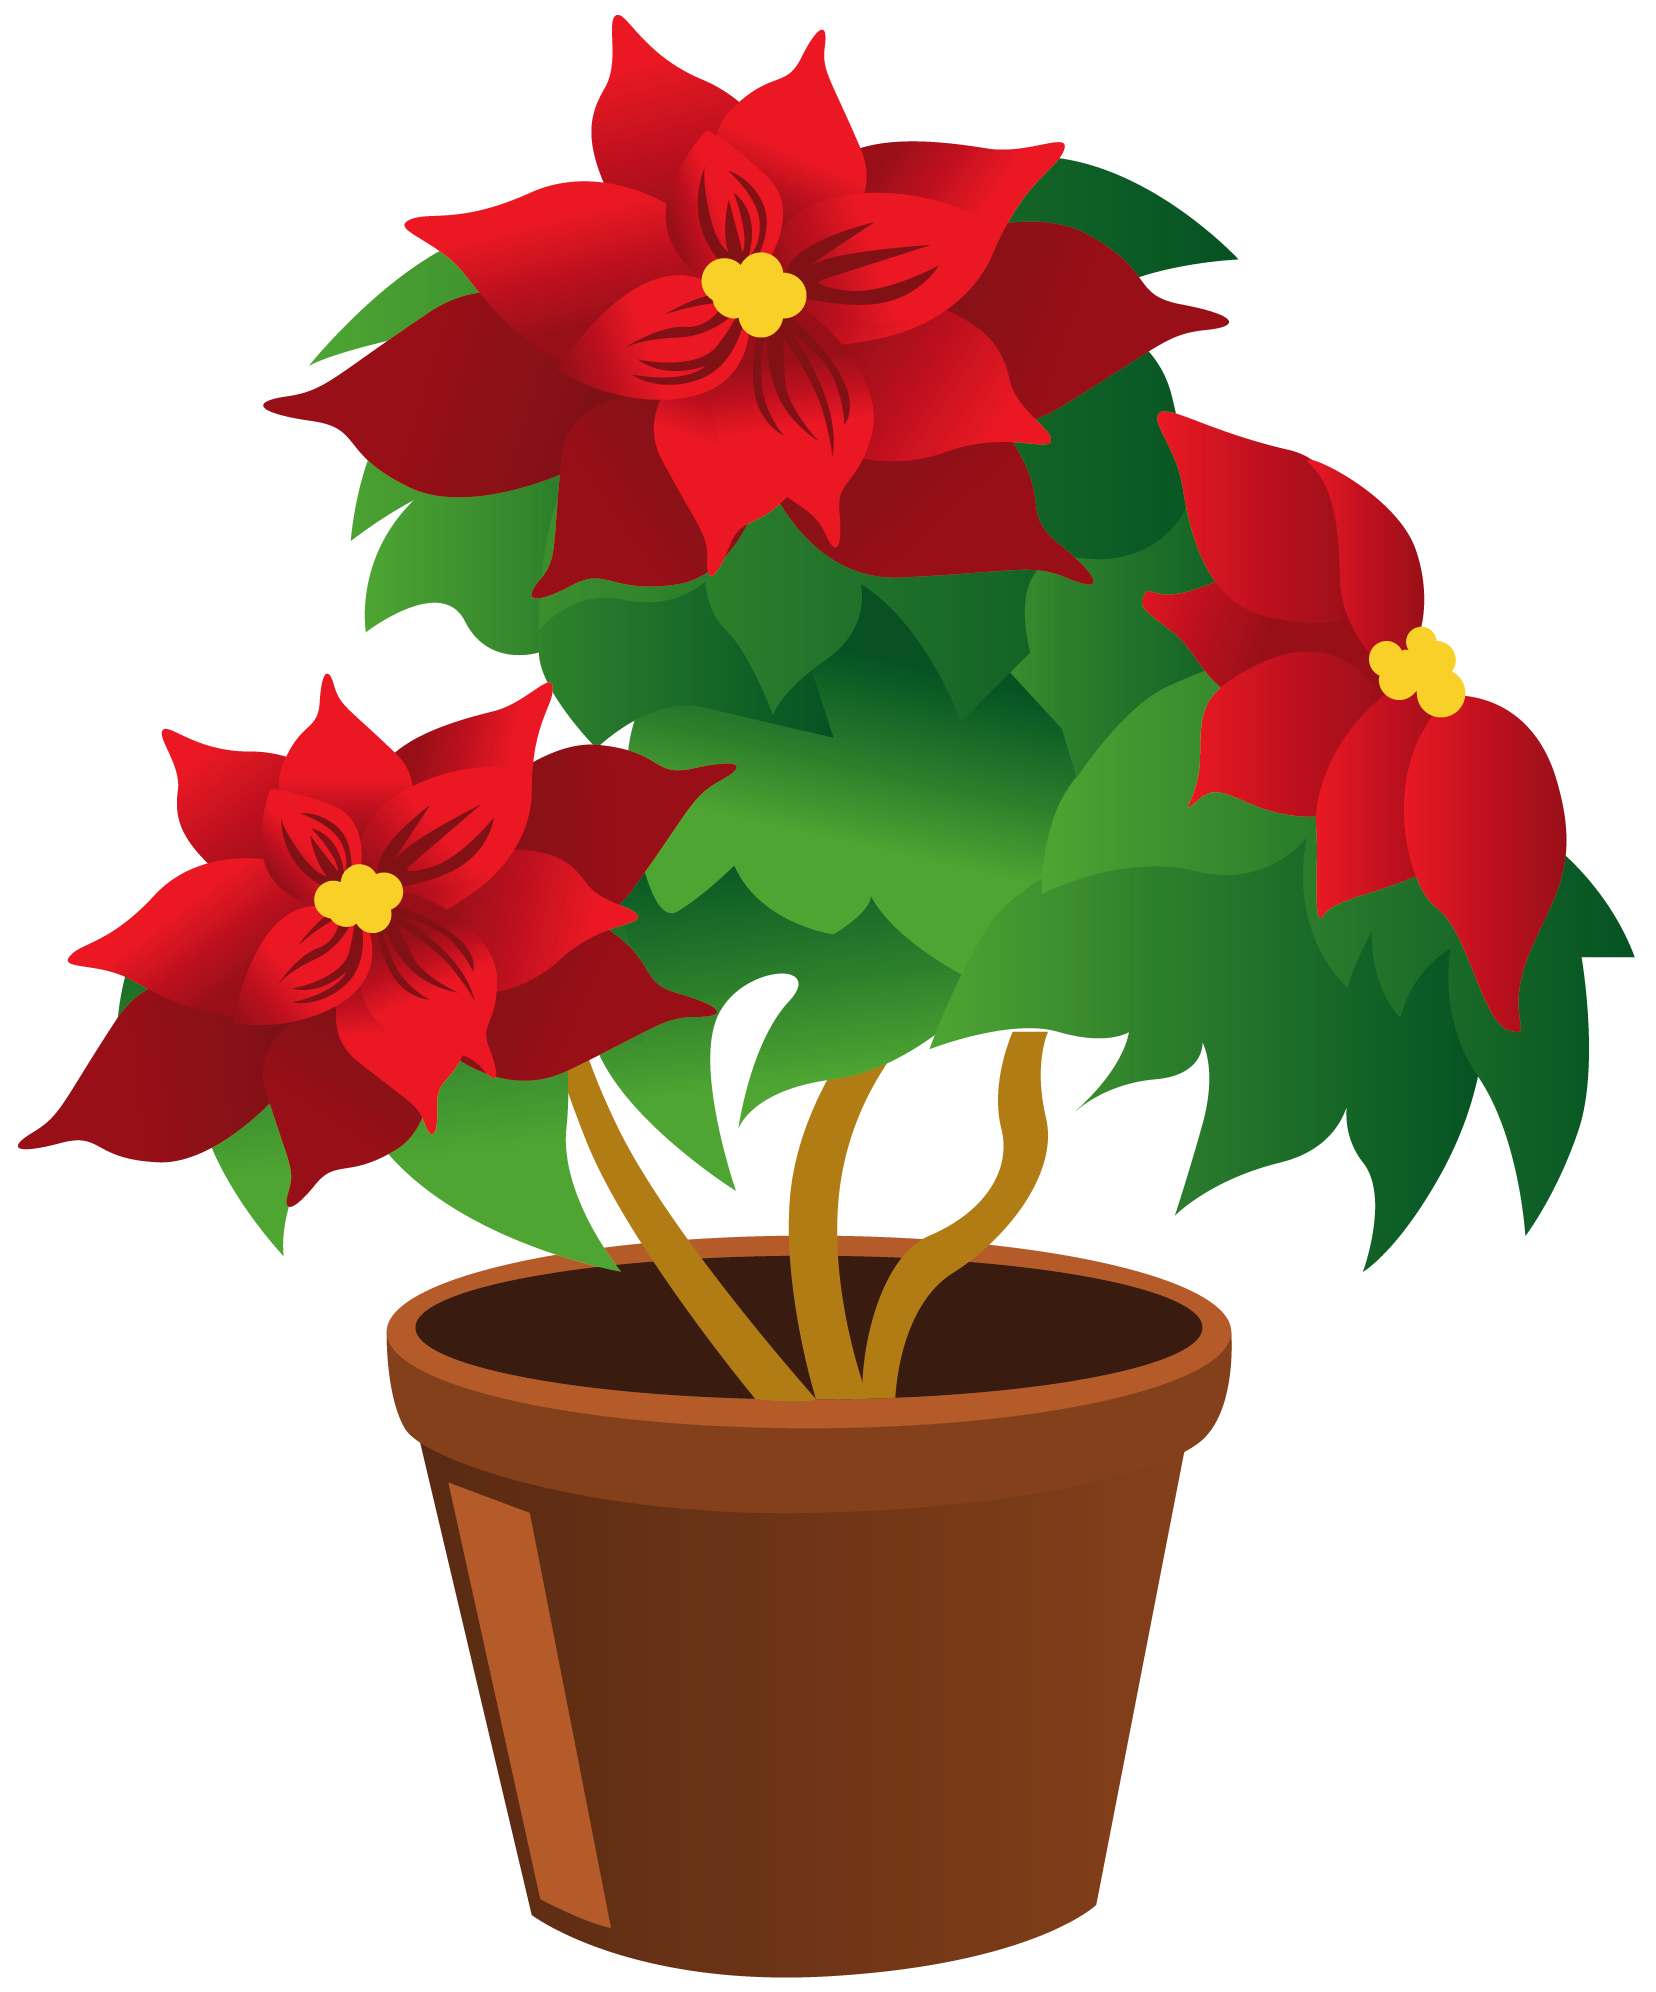 Poinsettia_Pot_PNG_Clipart | ✿° my garden valley ° ✿ | Pinterest ... black and white download